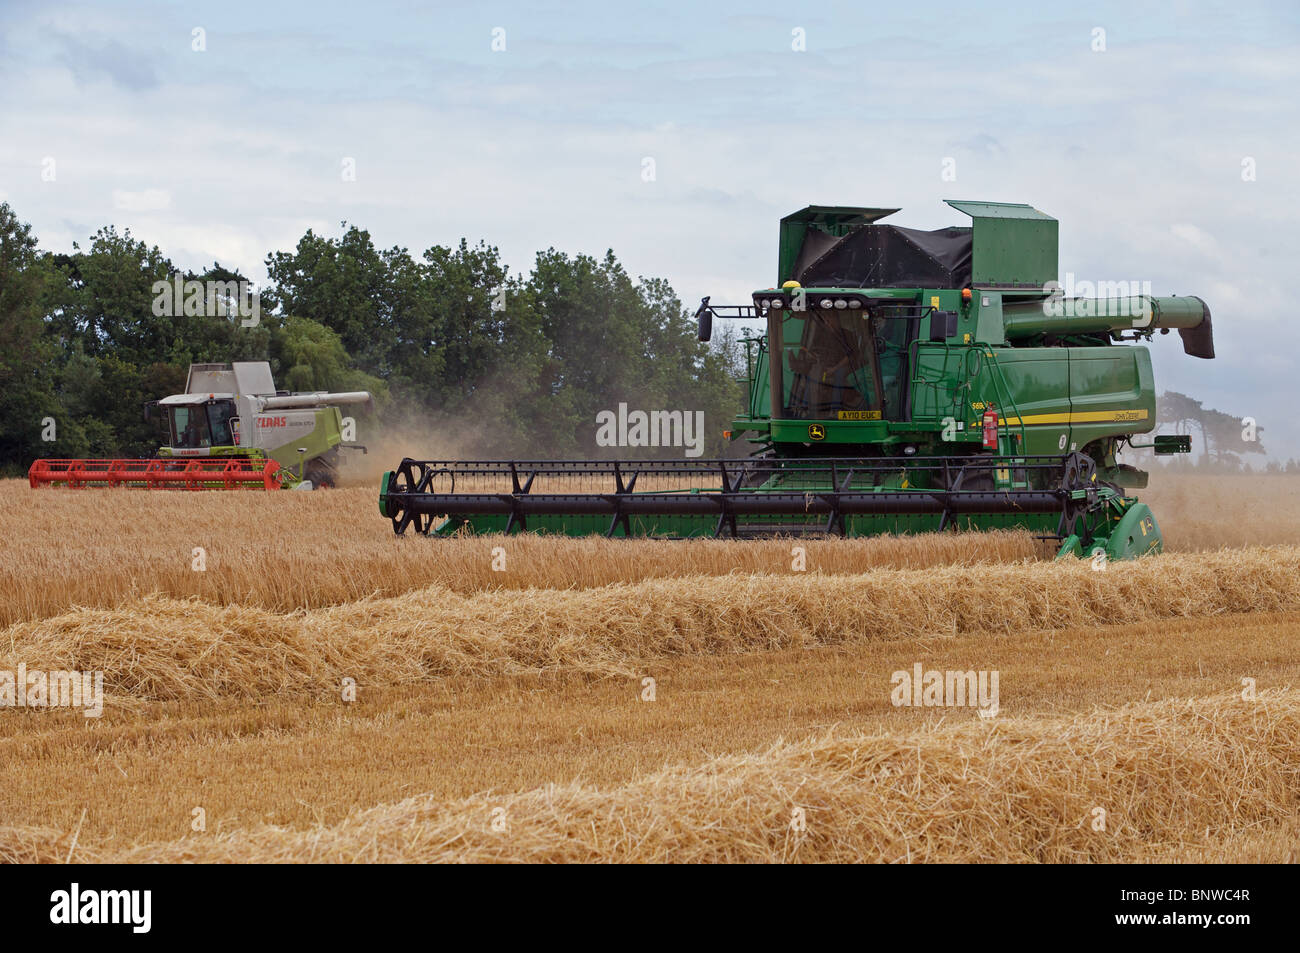 John Deere S690i and Claas Lexion 570 combine harvester working in unison cutting a field of wheat - Stock Image